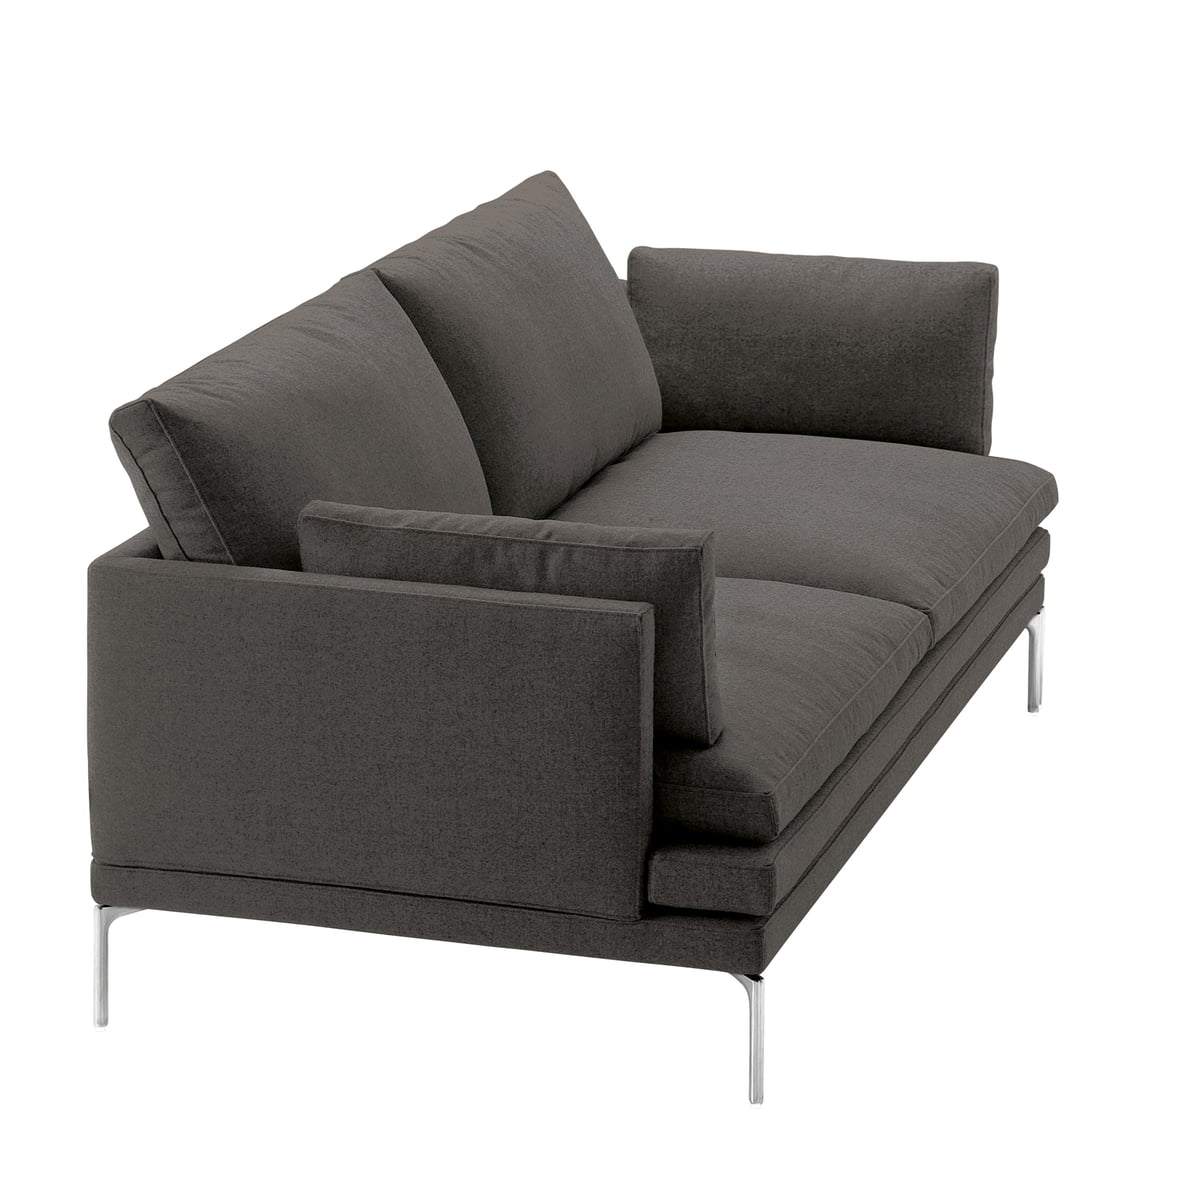 The william sofa by zanotta in the shop for Sofa 170 cm breit